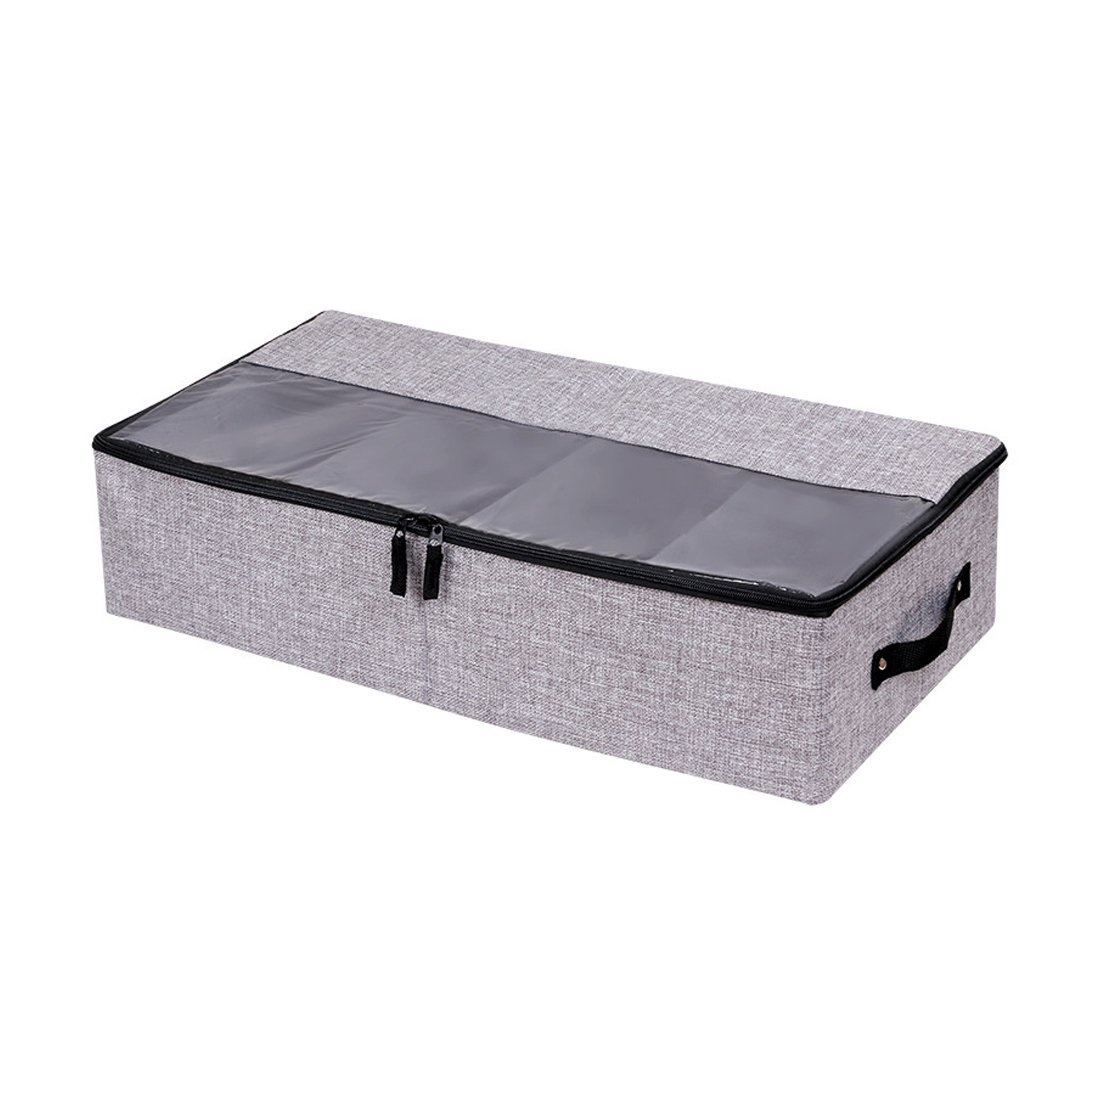 In kds Clothes Shoes Organizer Multifunction Foldable Under The Bed Storage Box with Dust-Proof Lid 4 Compartment (Dark Grey)